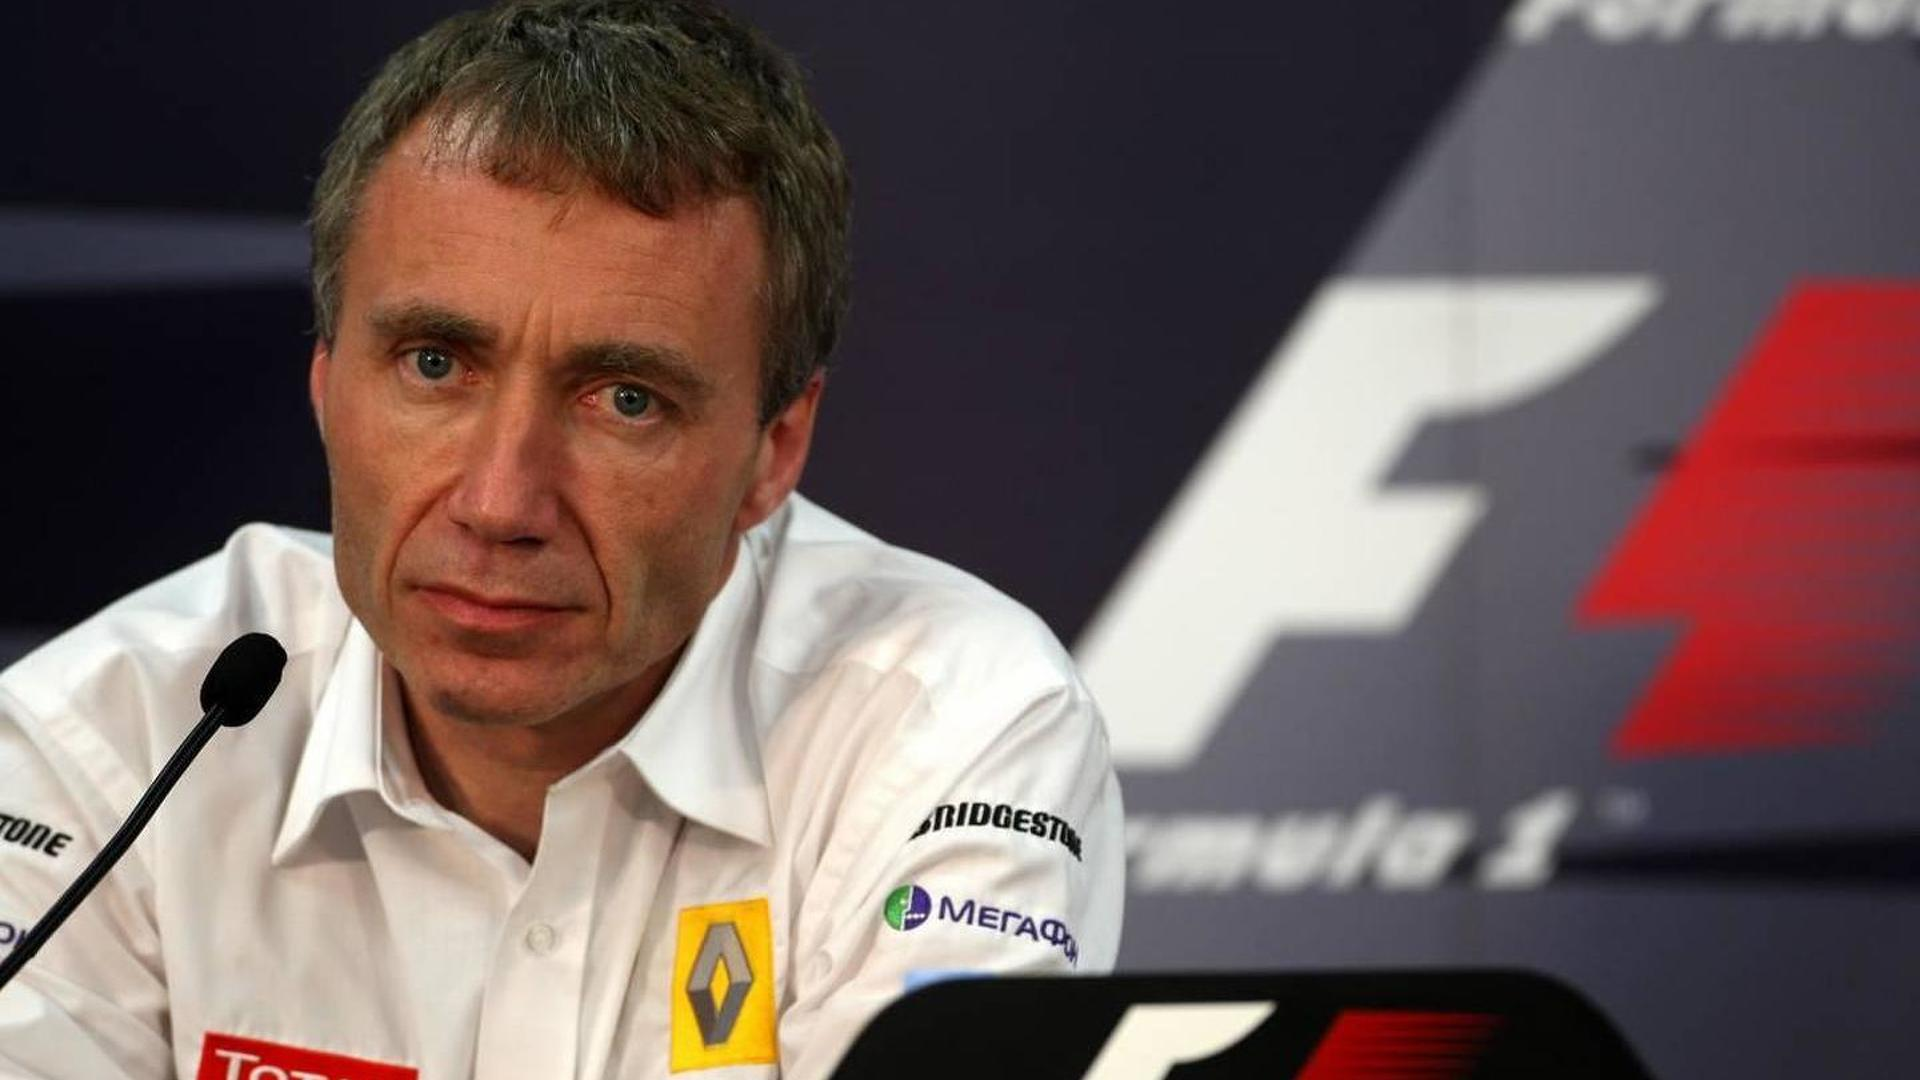 Report hints at Force India or McLaren move for Bell